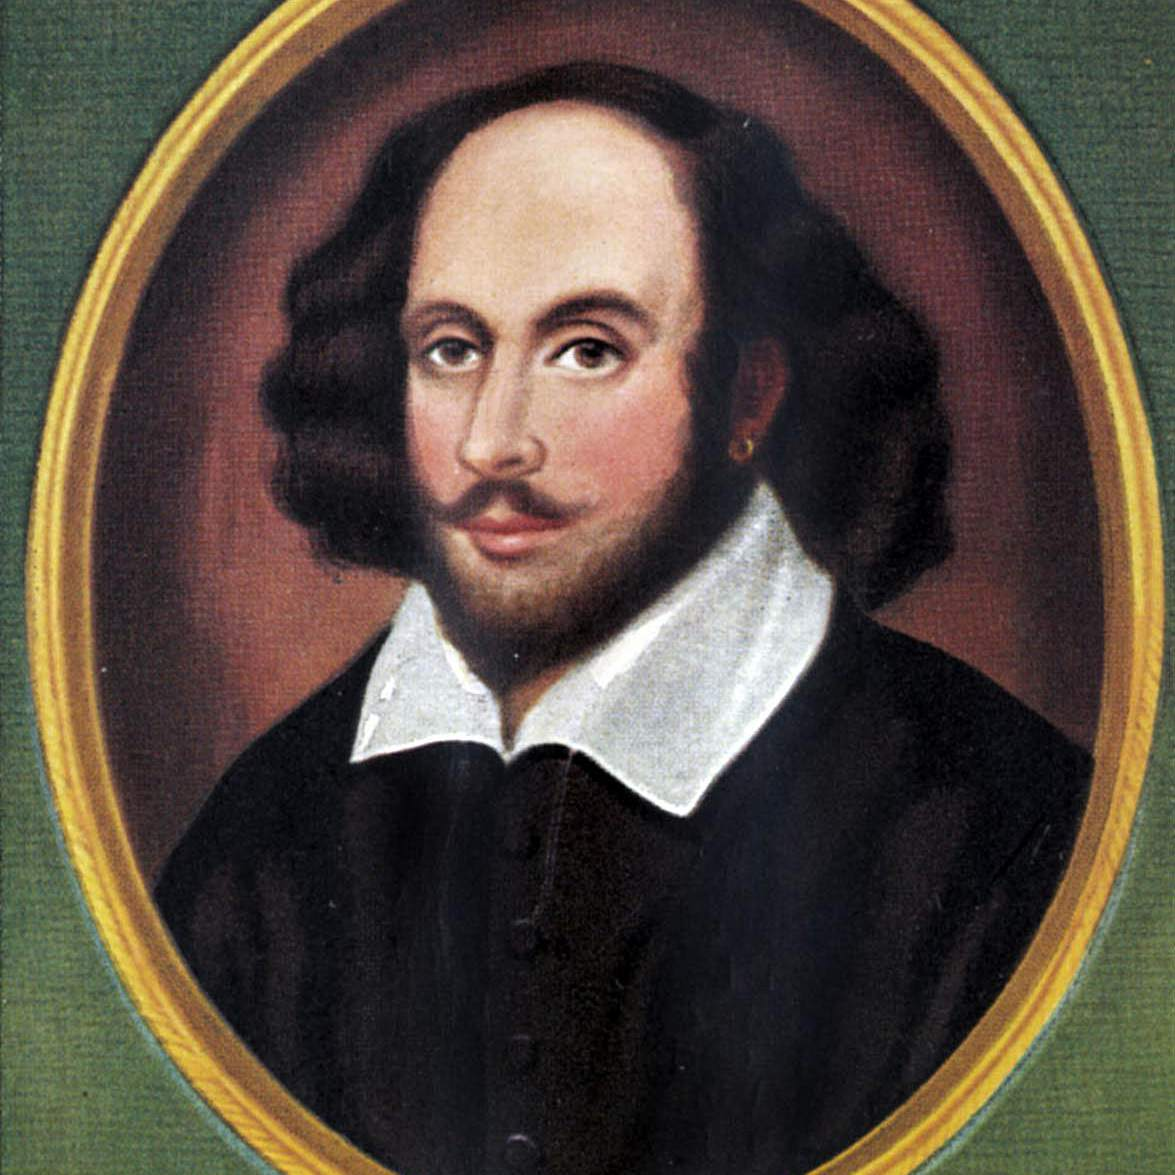 William Shakespeare - Culture Club - Hulton Archive - Getty Images